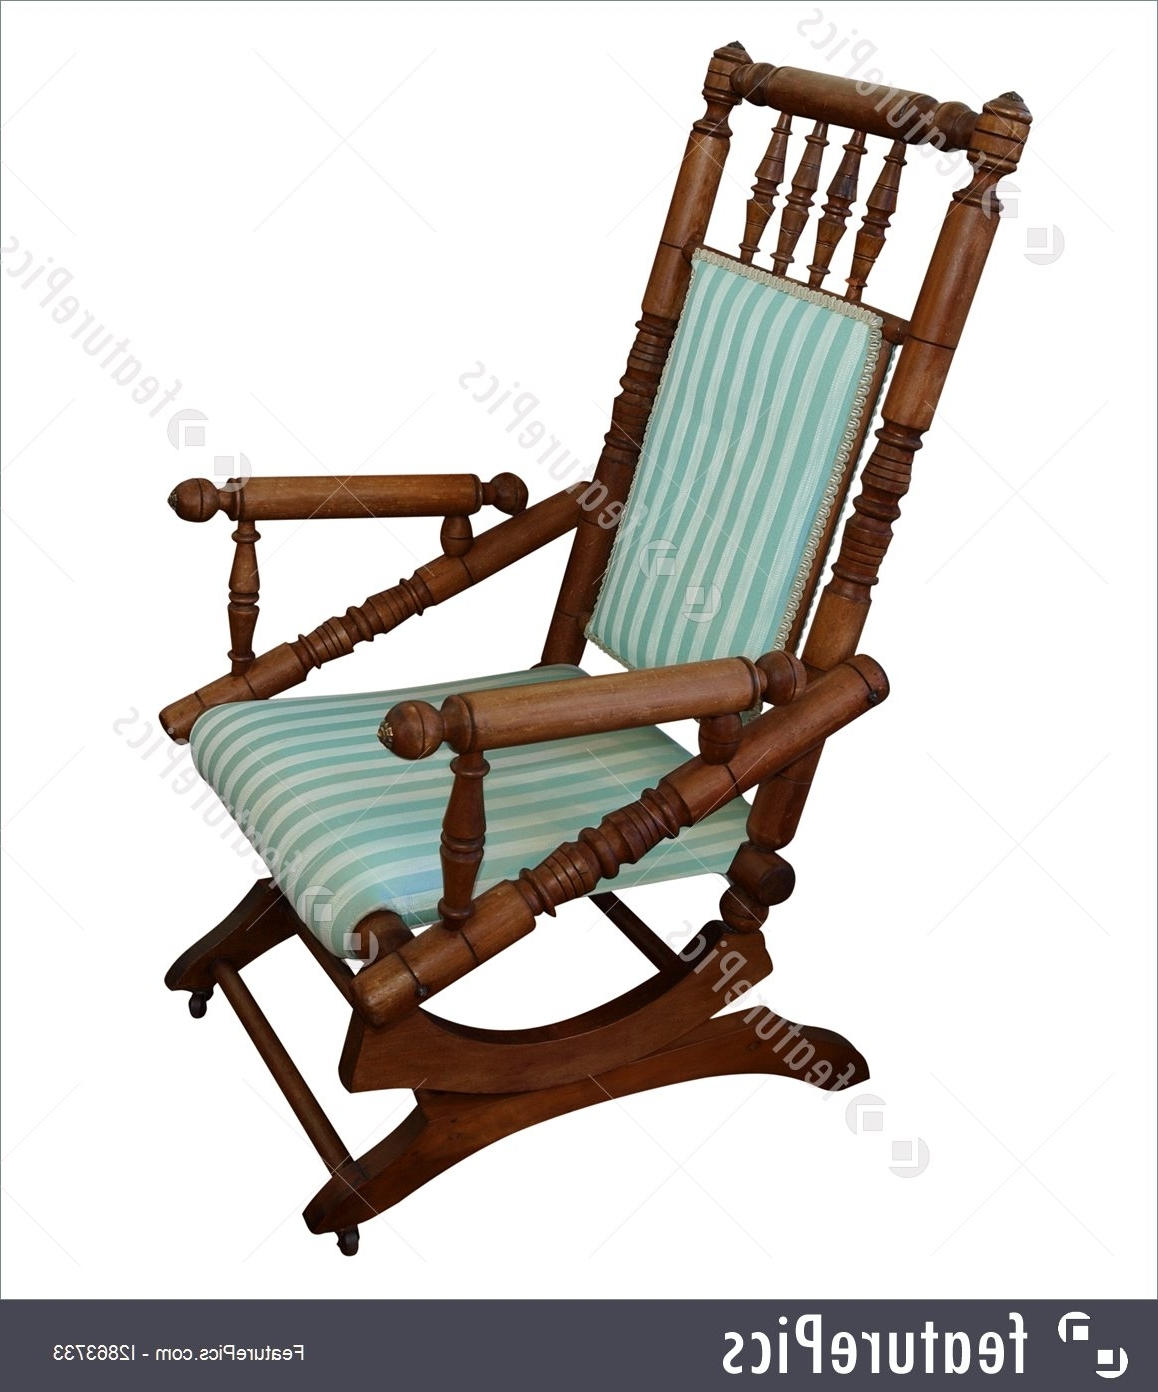 House Living: Antique Rocking Chair Isolated With Clipping Path Pertaining To 2017 Antique Rocking Chairs (View 2 of 15)